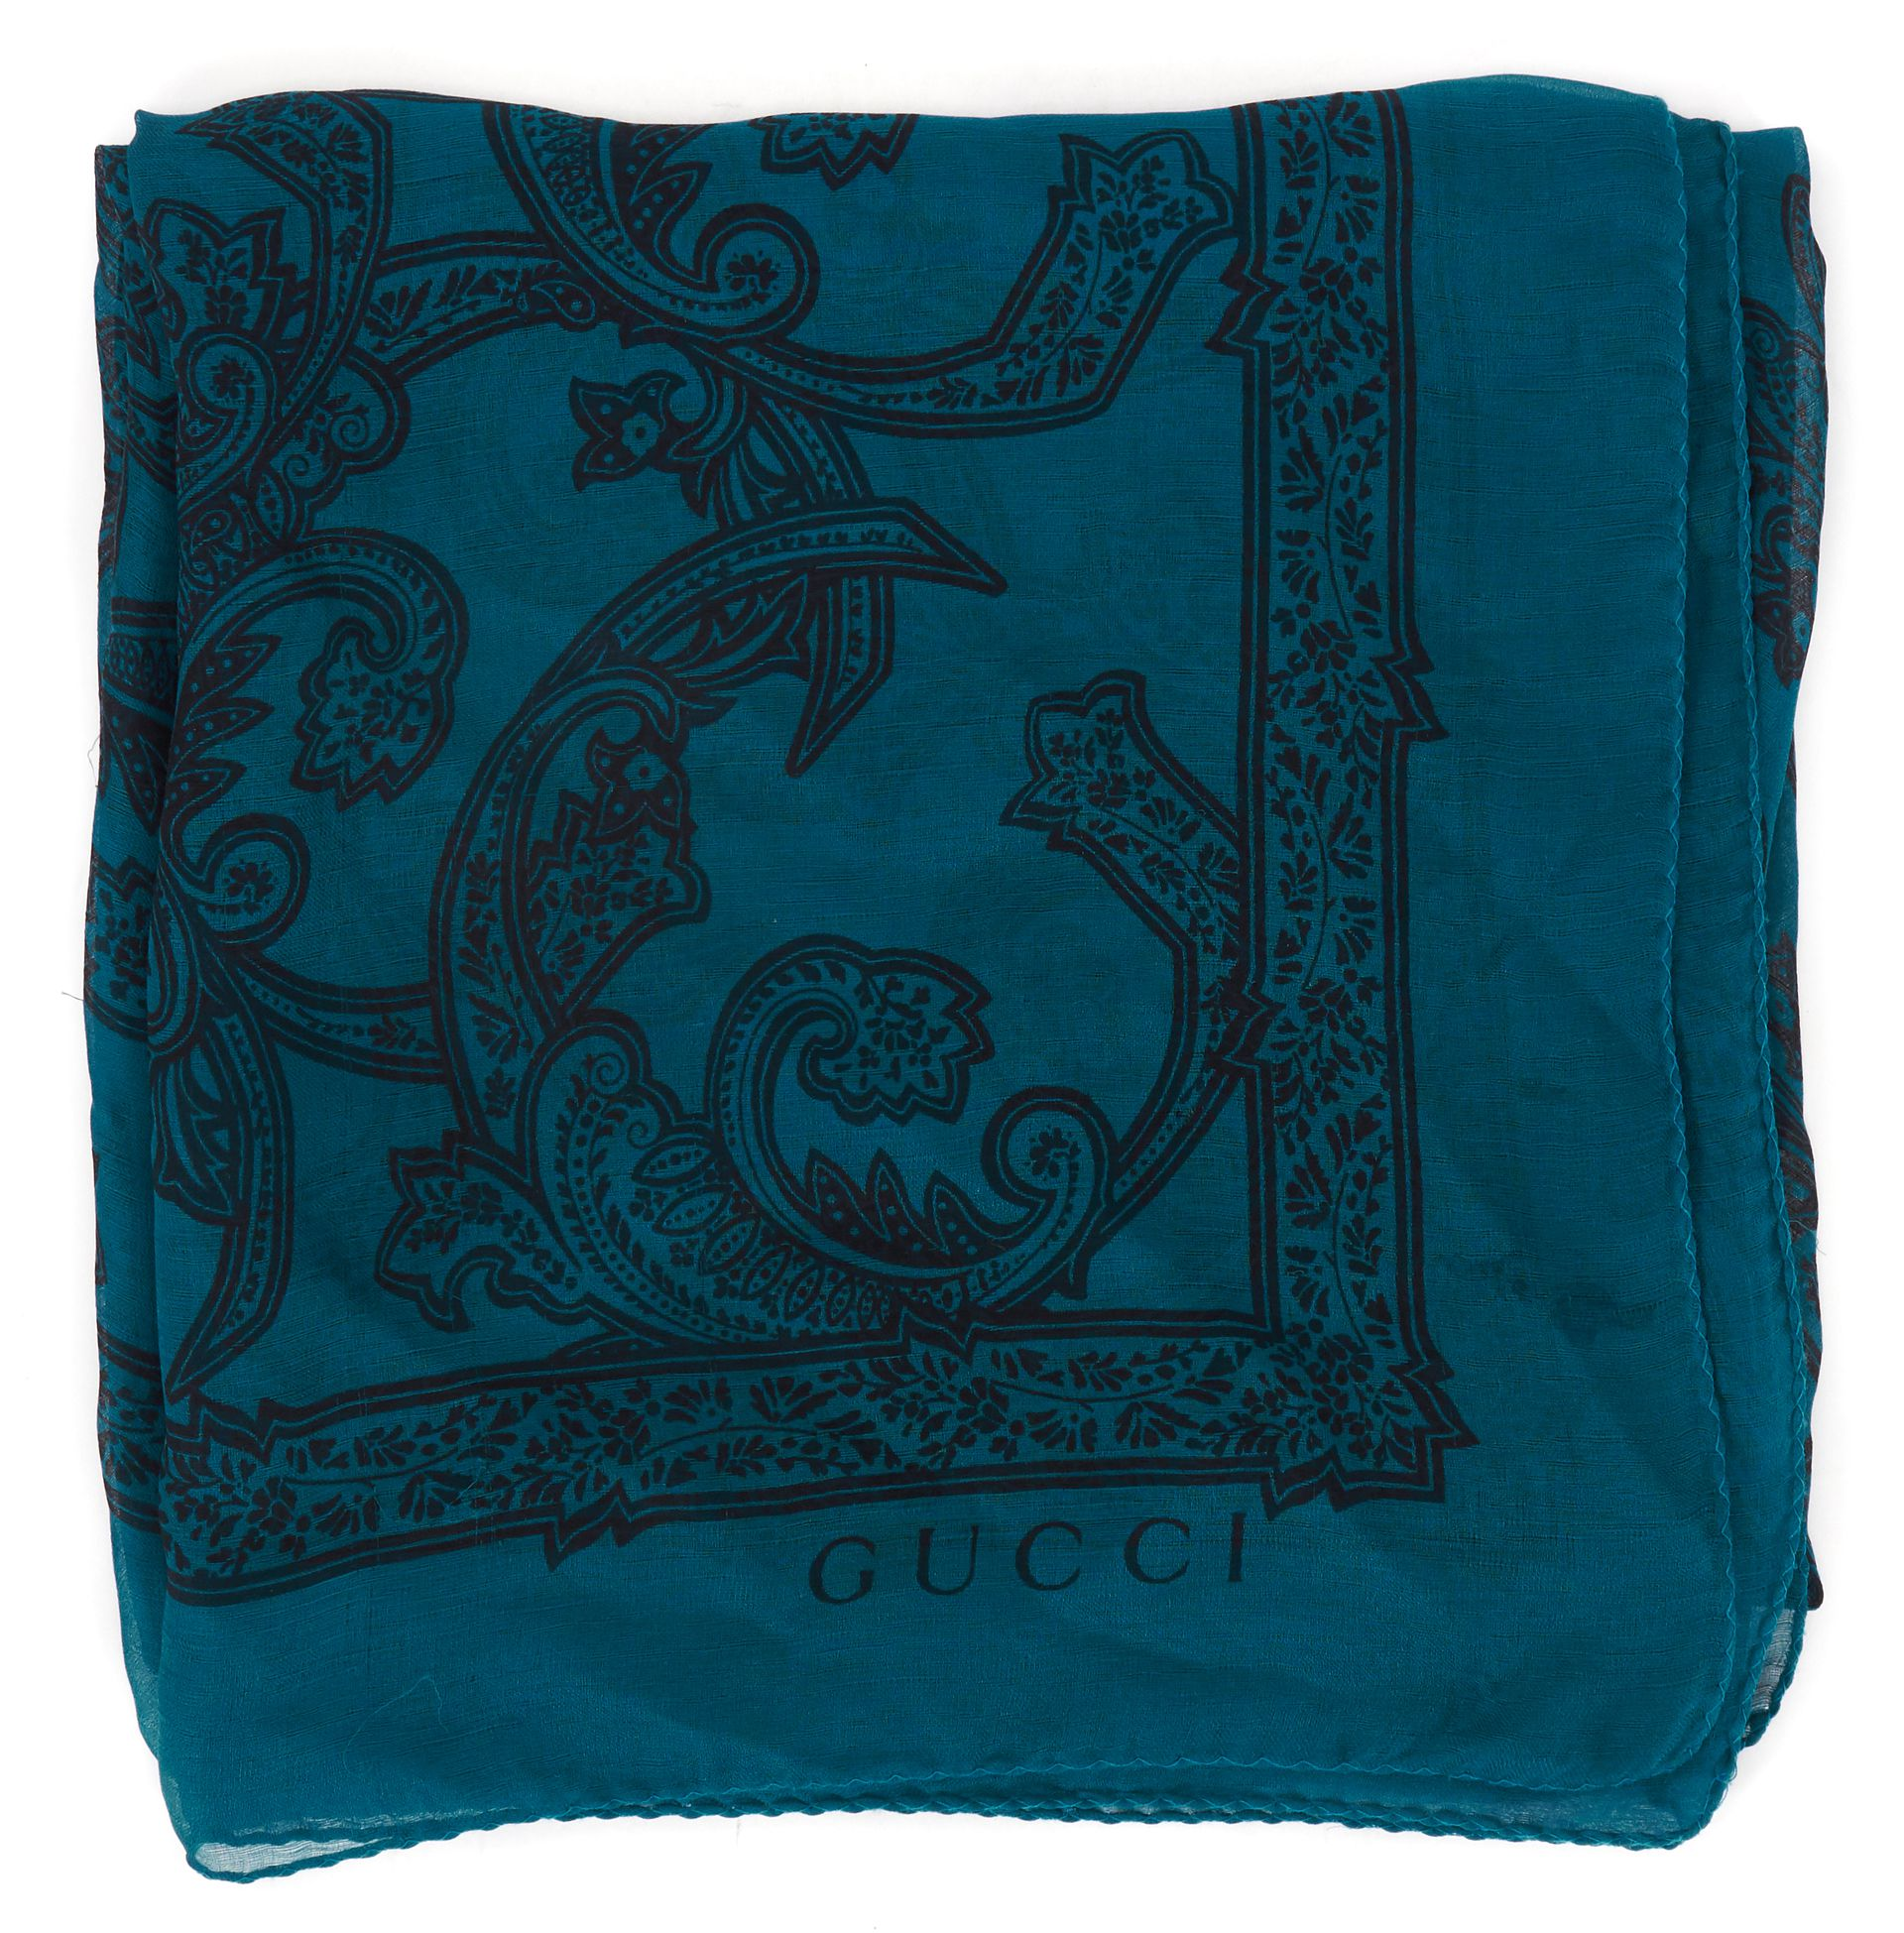 GUCCI Teal Blue Black Paisley Printed Sheer Silk Large Square ...